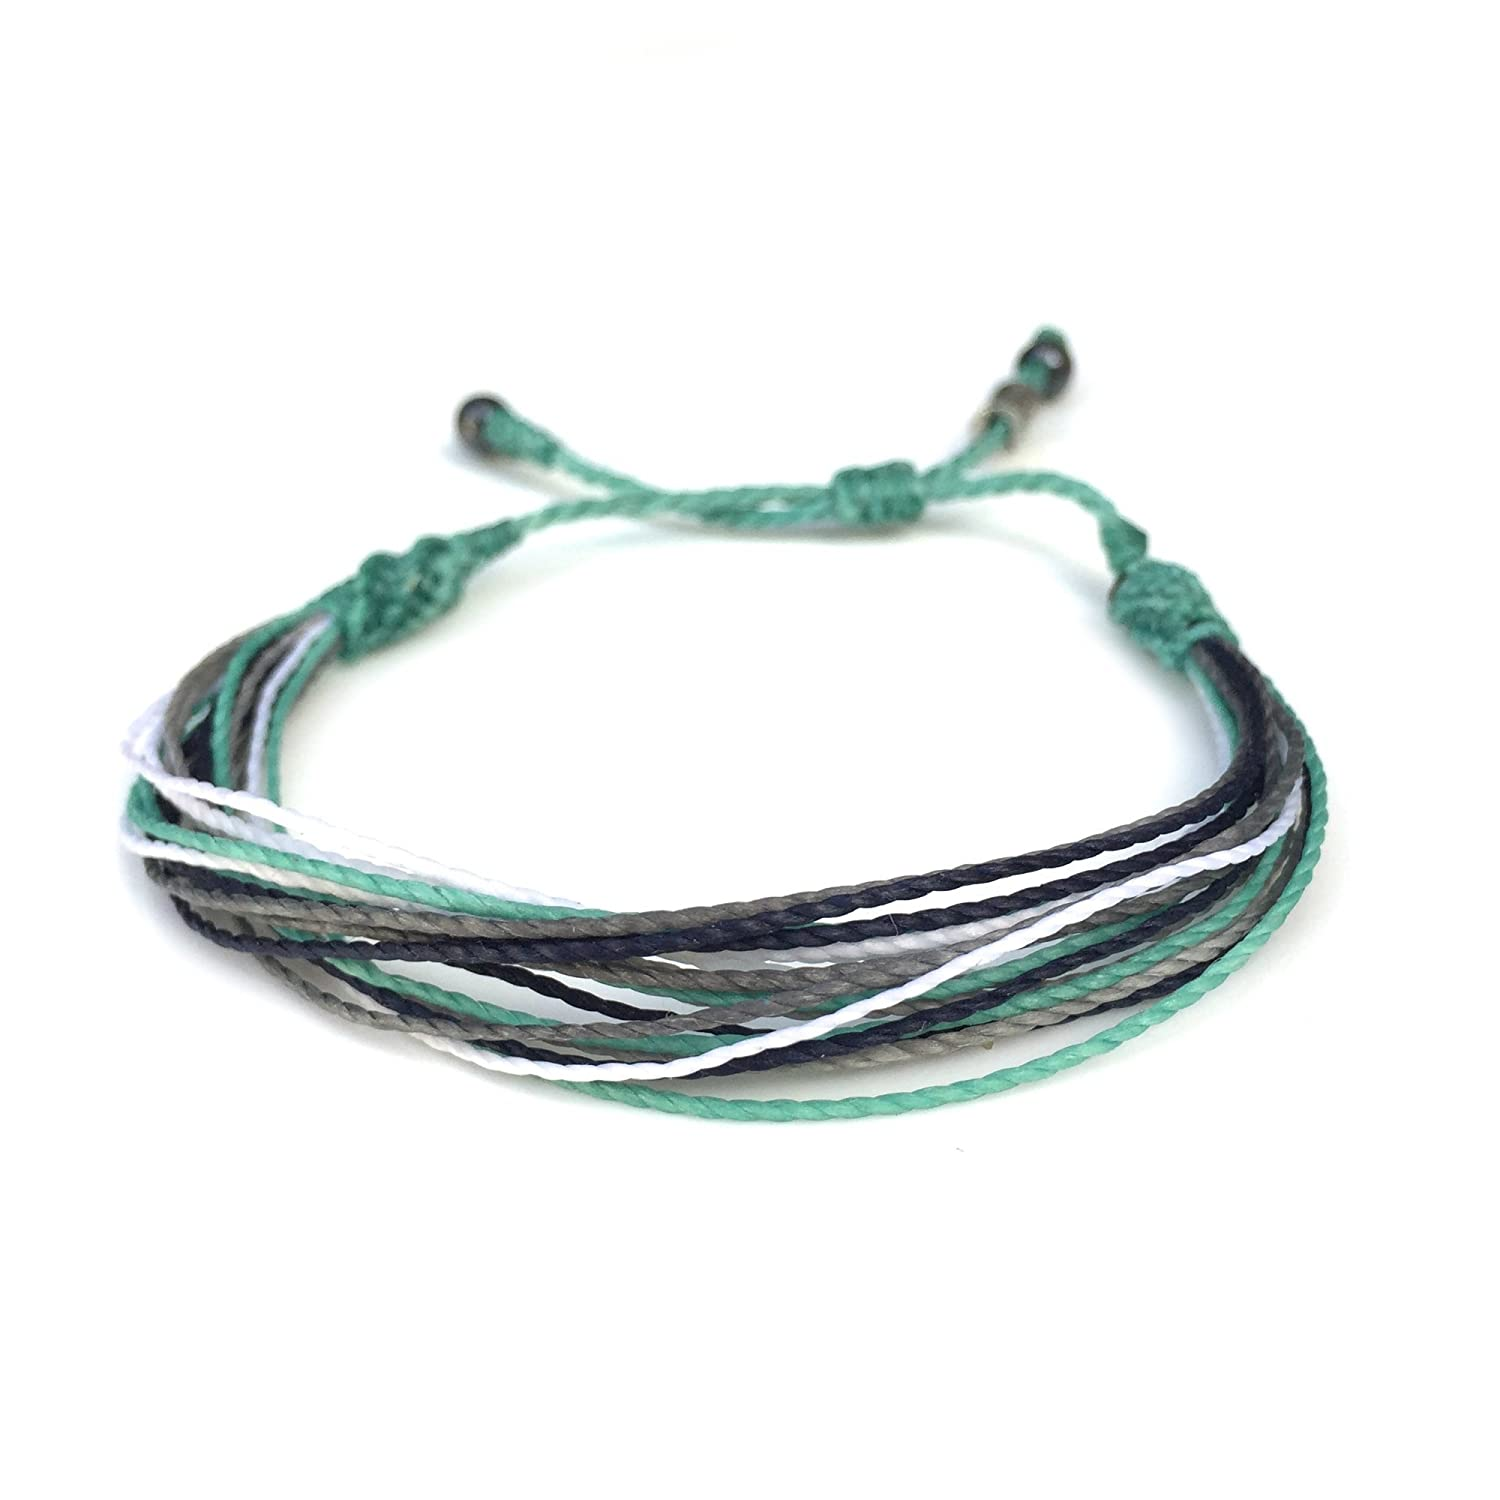 Surfer String Bracelet for Men and Women with Hematite Stones: Handmade Pull Cord Adjustable Friendship Bracelet by Rumi Sumaq